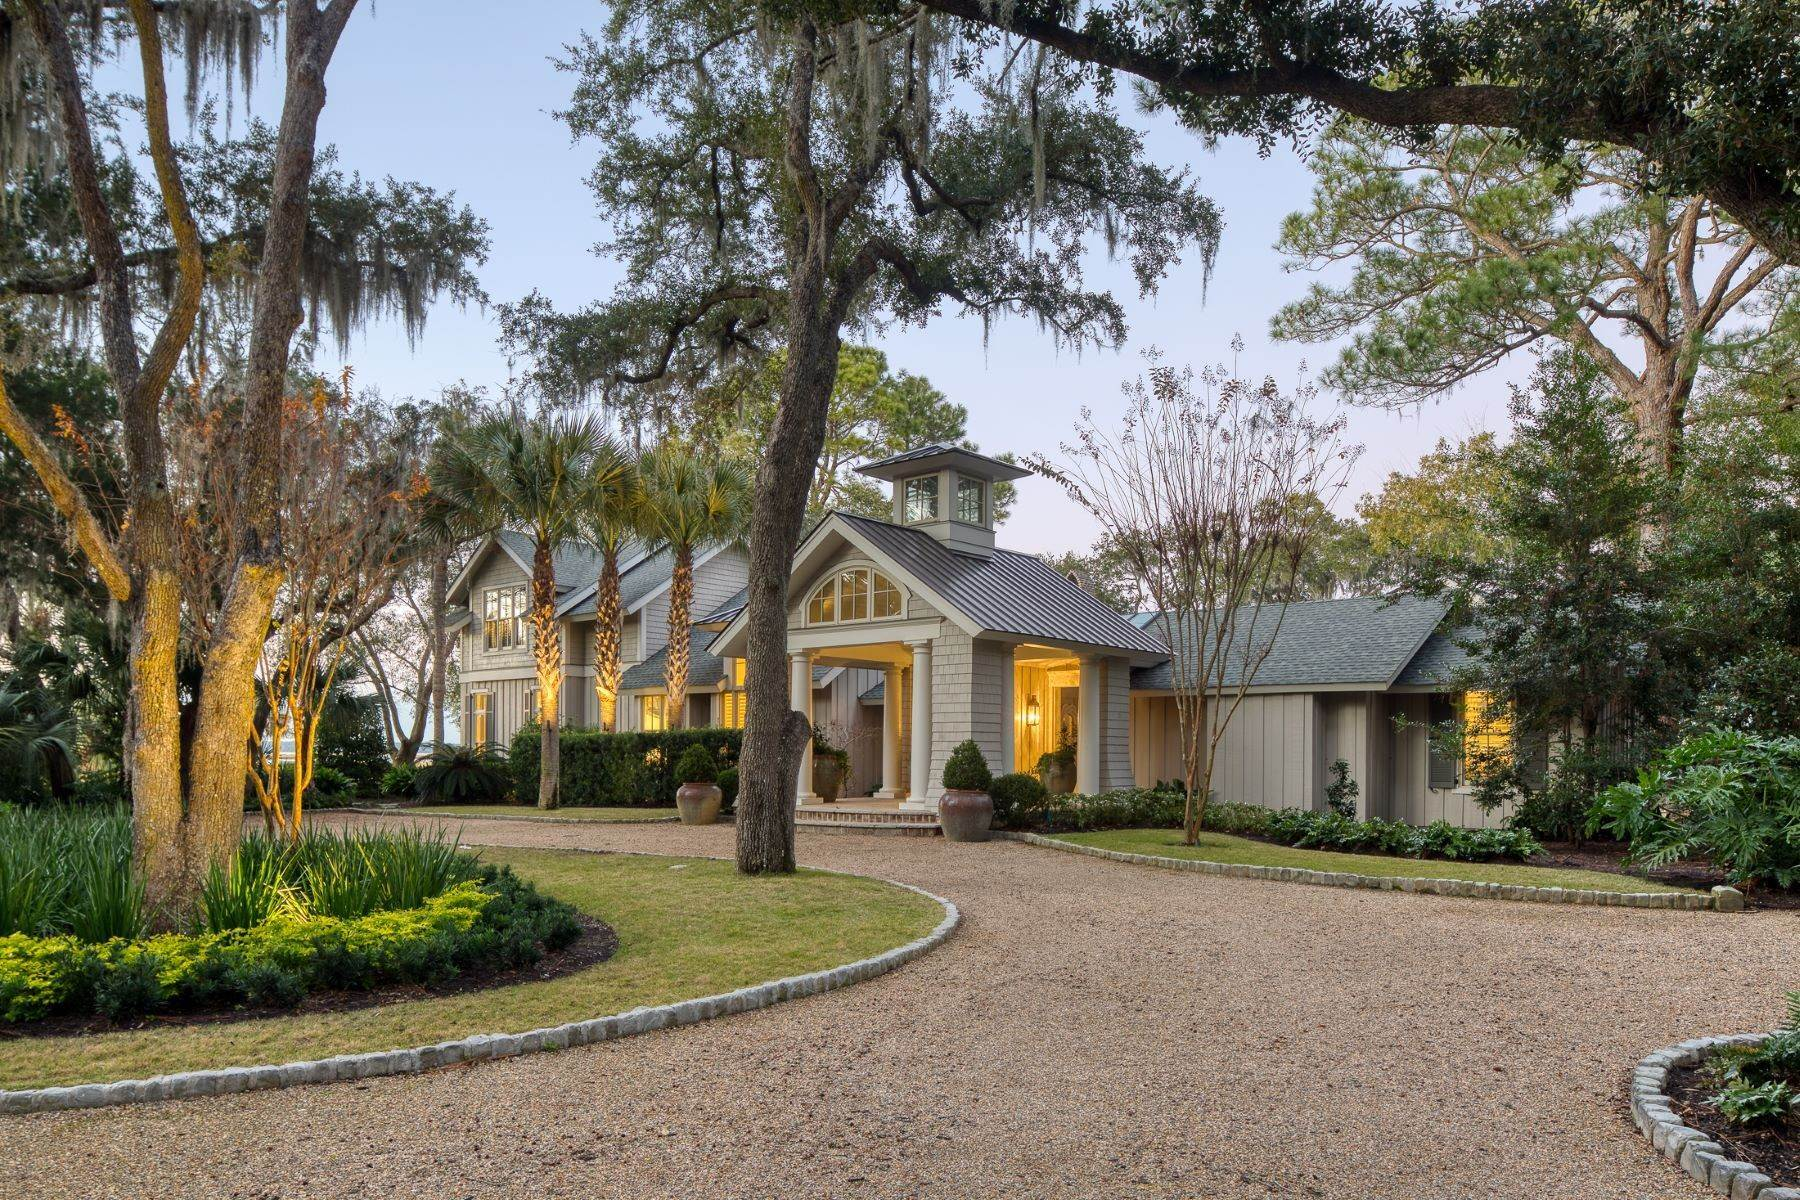 Single Family Homes for Sale at Premier Waterfront 71 North Calibogue Cay Hilton Head Island, South Carolina 29928 United States